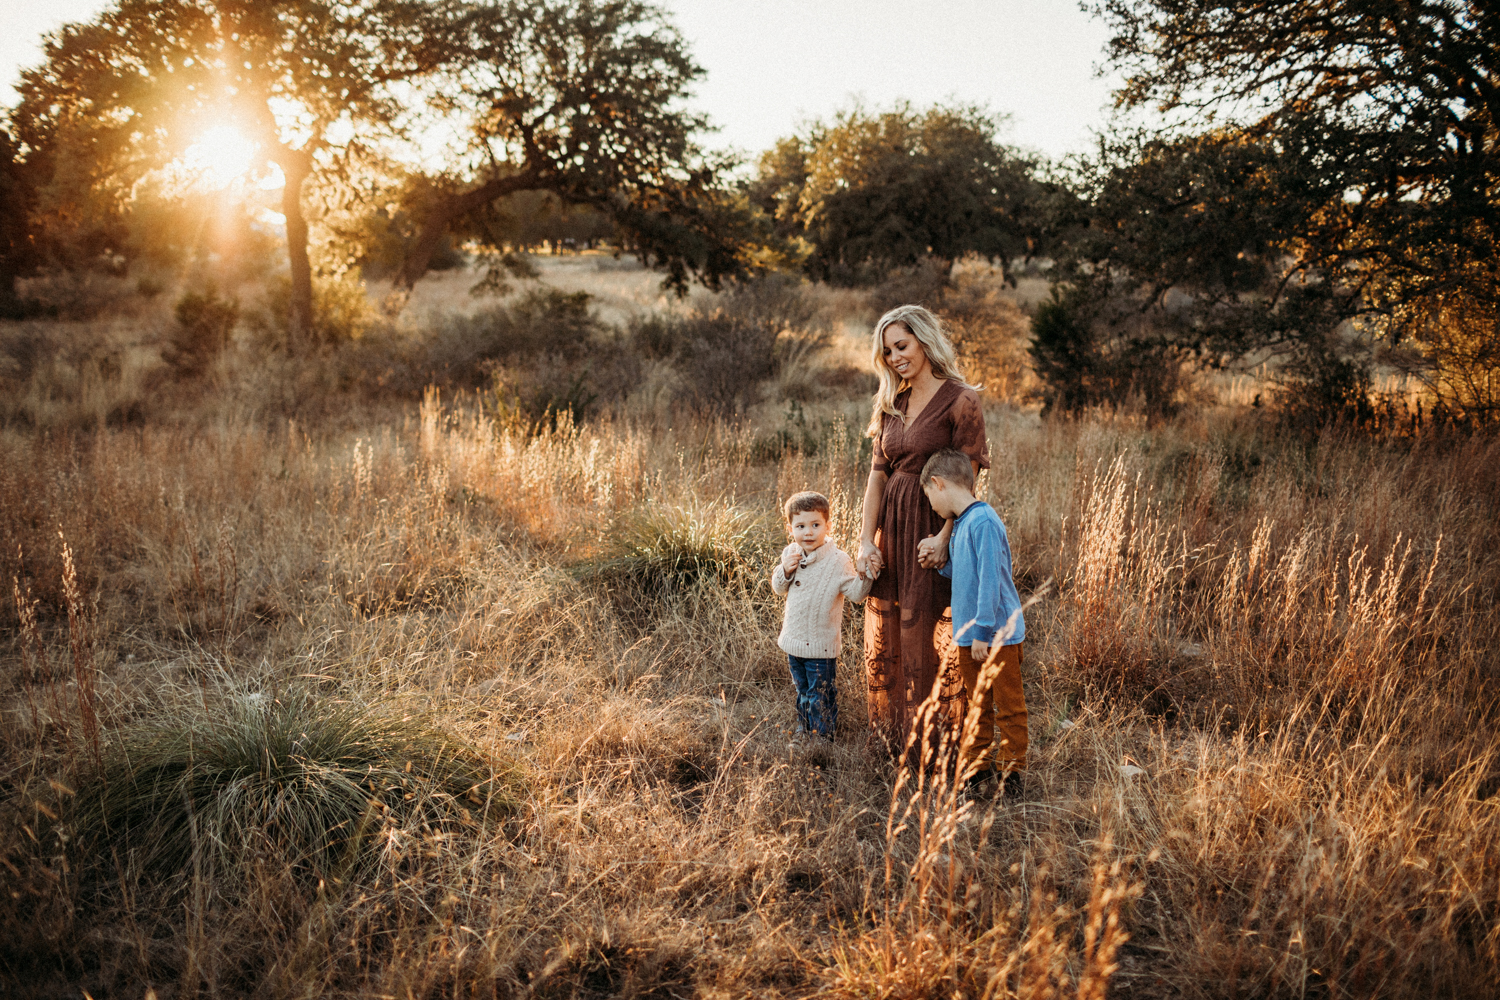 287_san antonio family lifestyle photographer.jpg